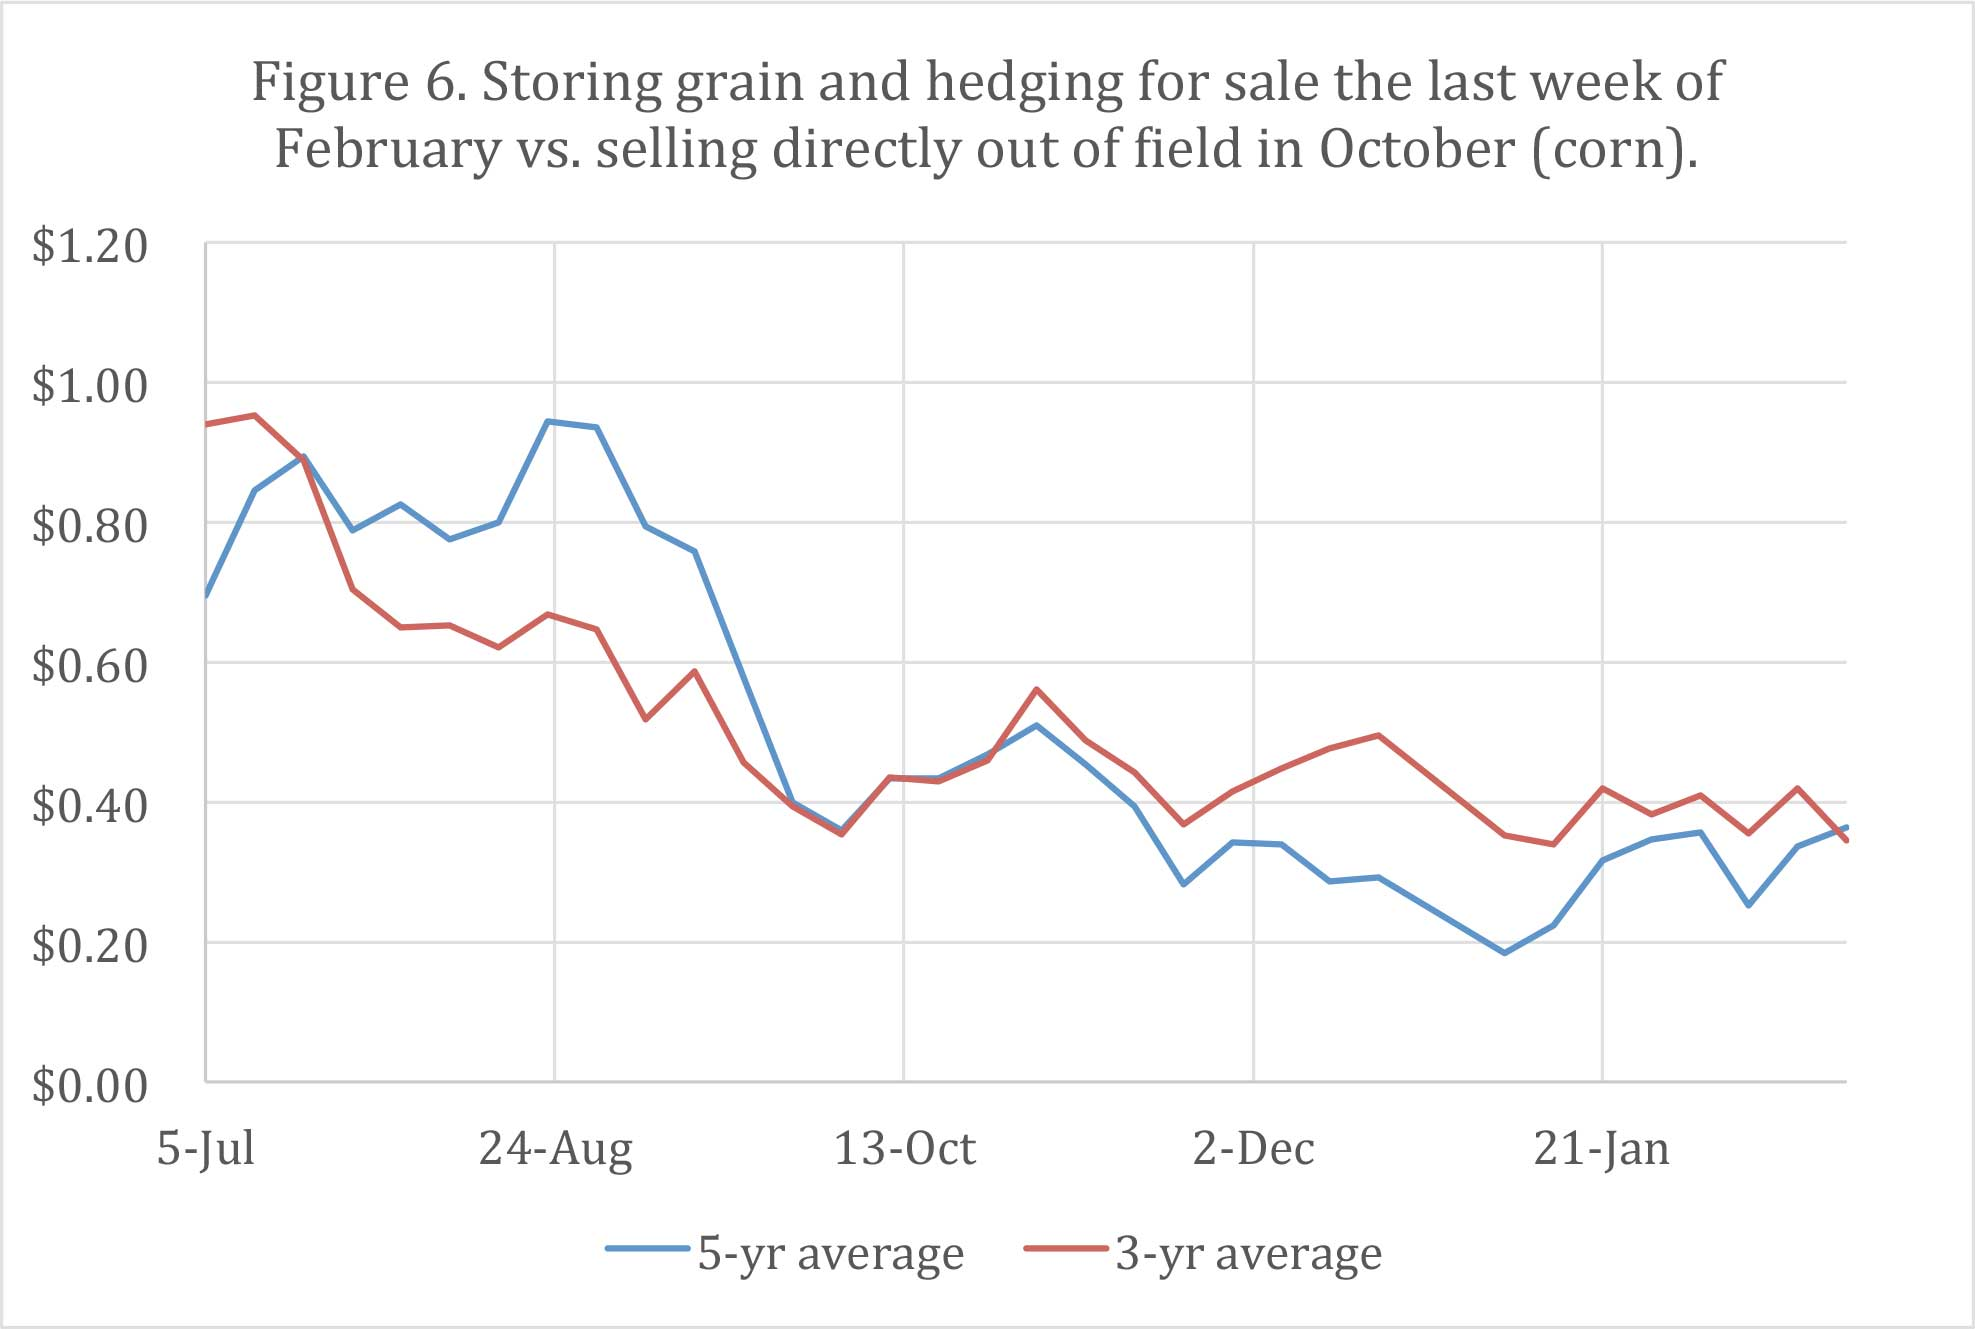 Figure 6. Storing grain and hedging for sale the last week of February vs. selling directly out of field in October (corn).